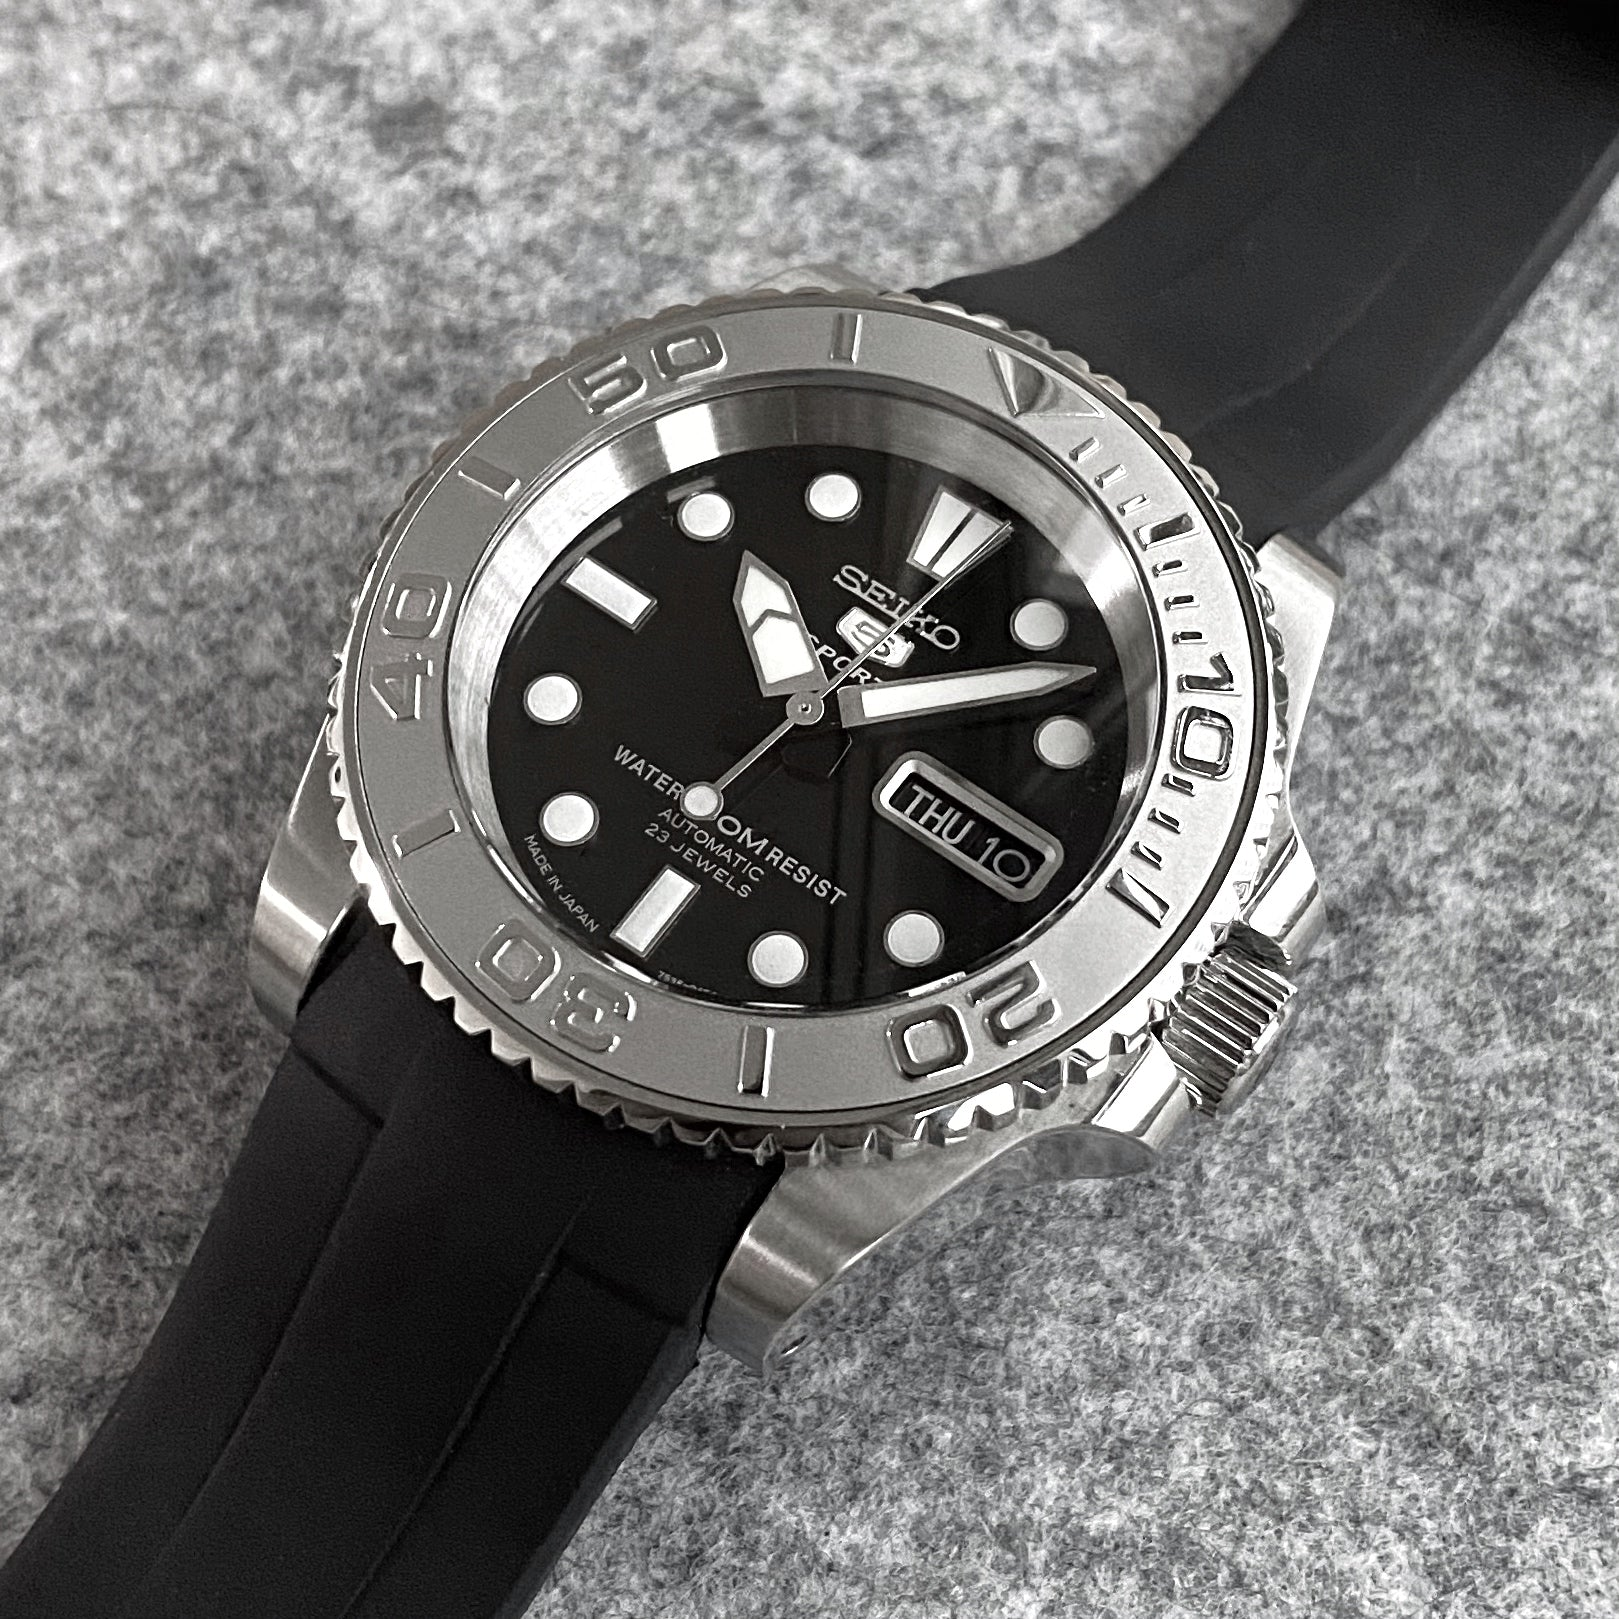 Case - SKX007 Sub - Polished Steel (With Case Back)